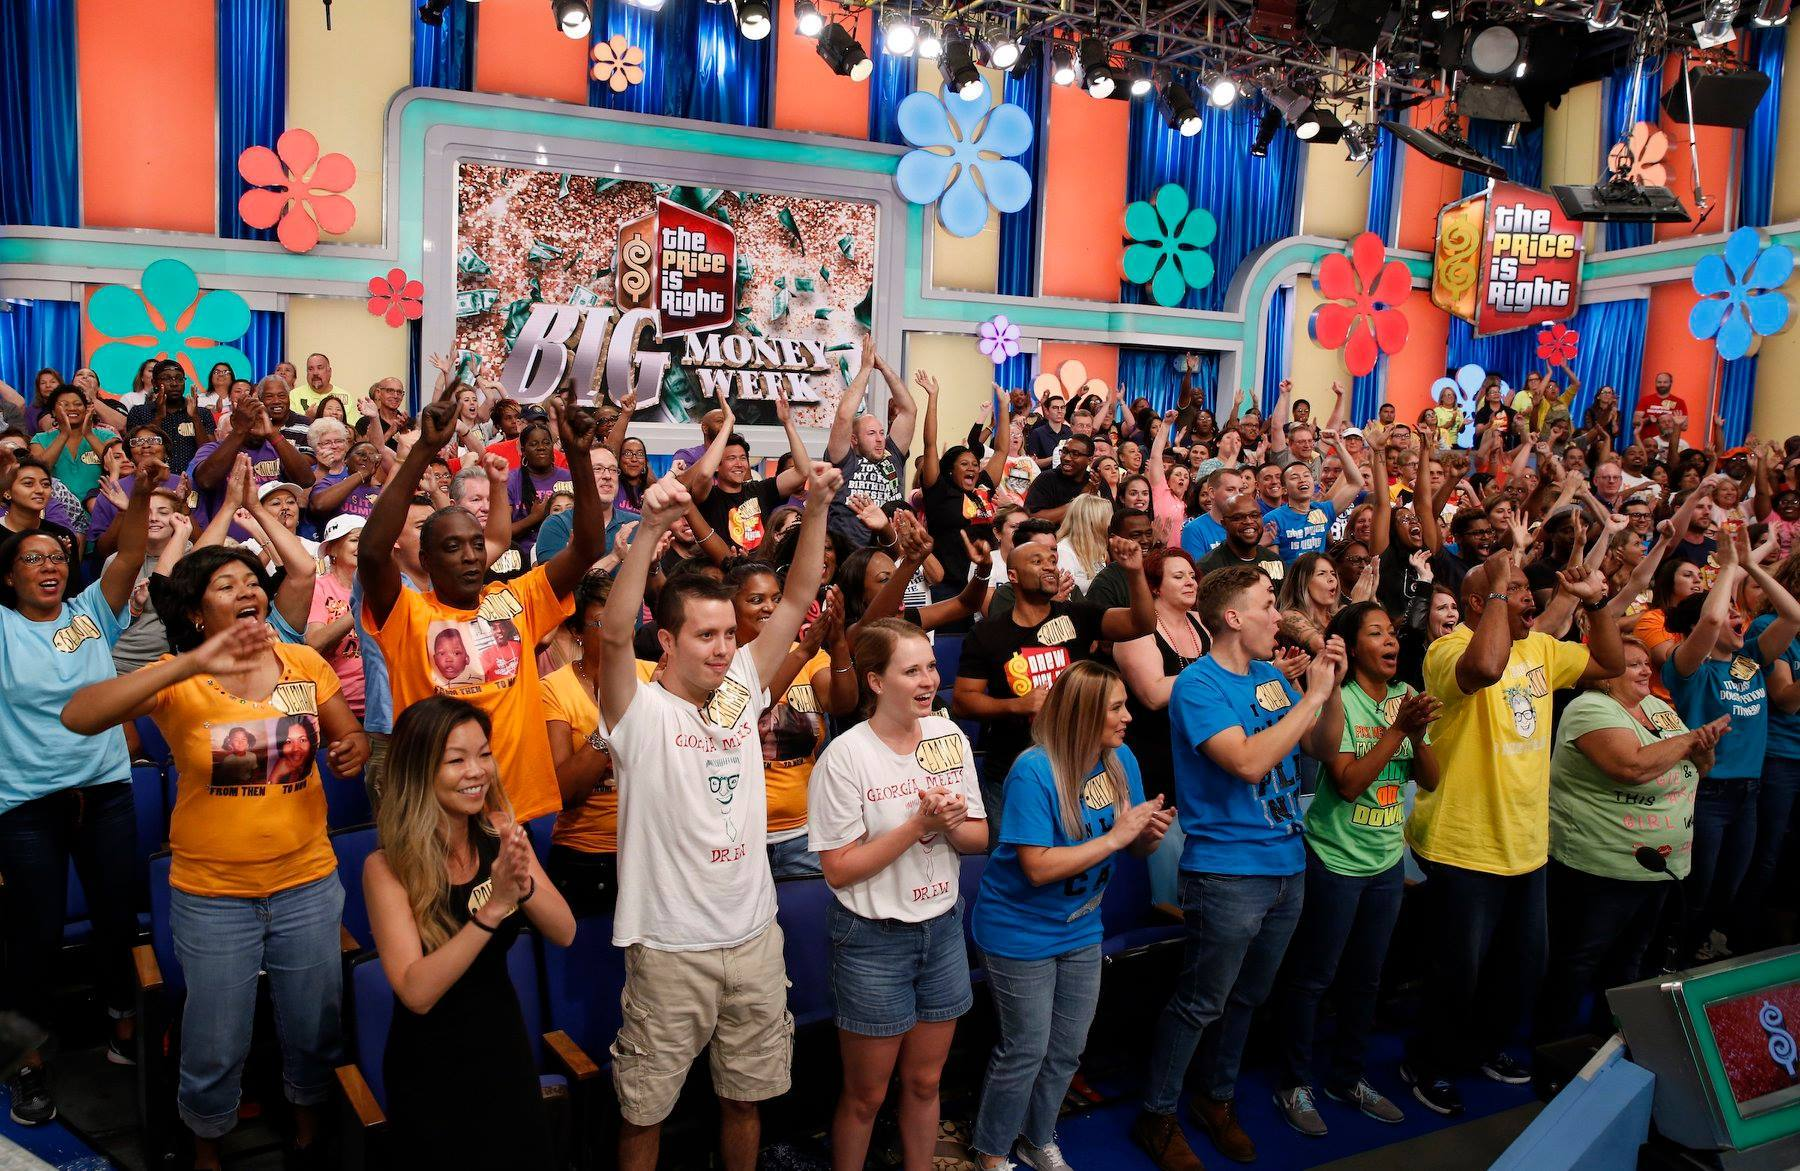 Big Money Week on The Price is Right | Photo: The Price is Right, Facebook